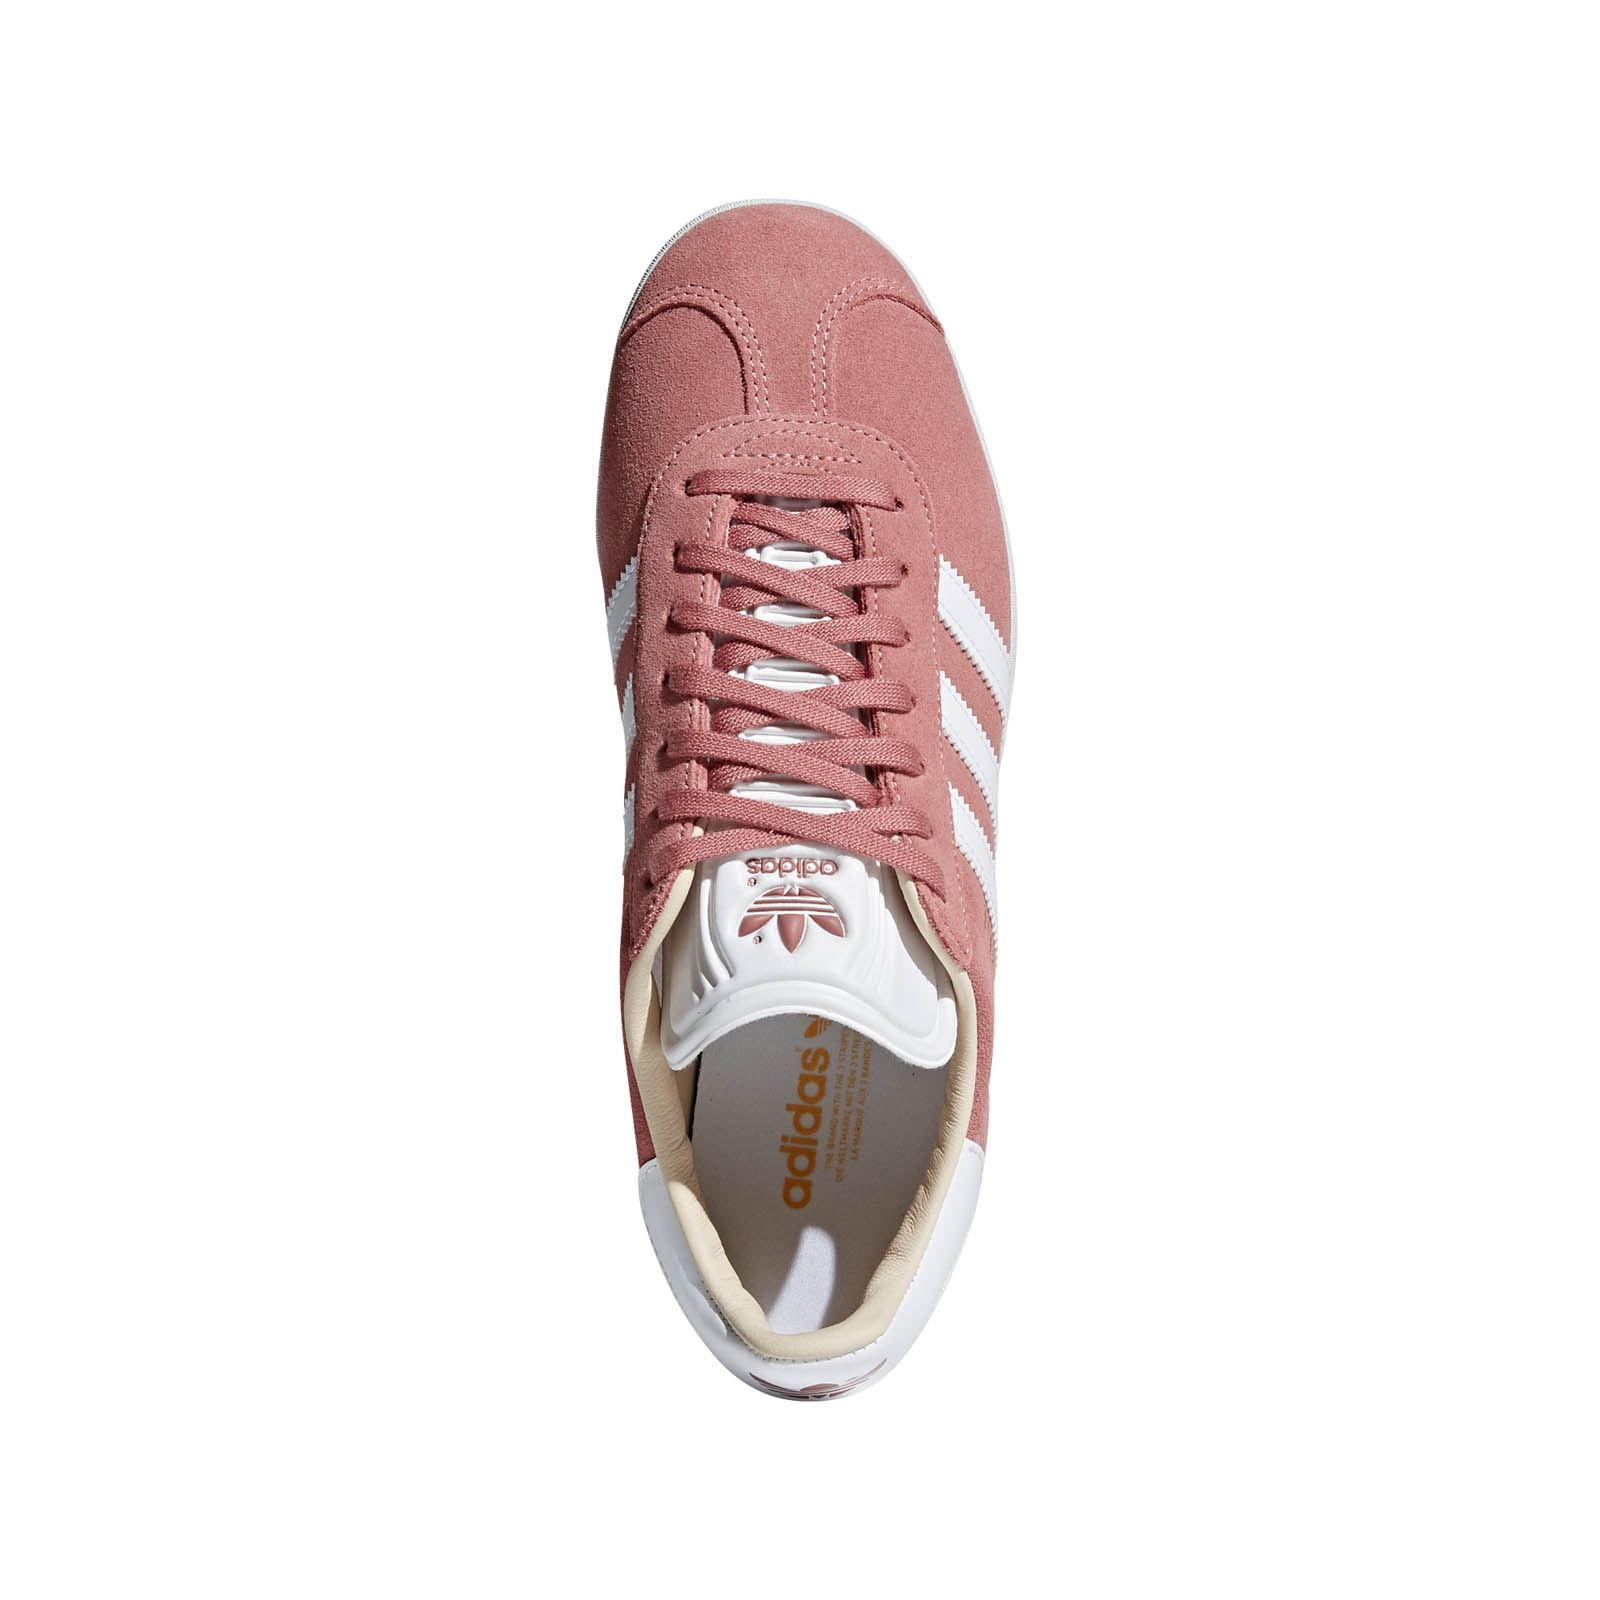 Sneakers cuir vieux rose talon reptile rayures blanches